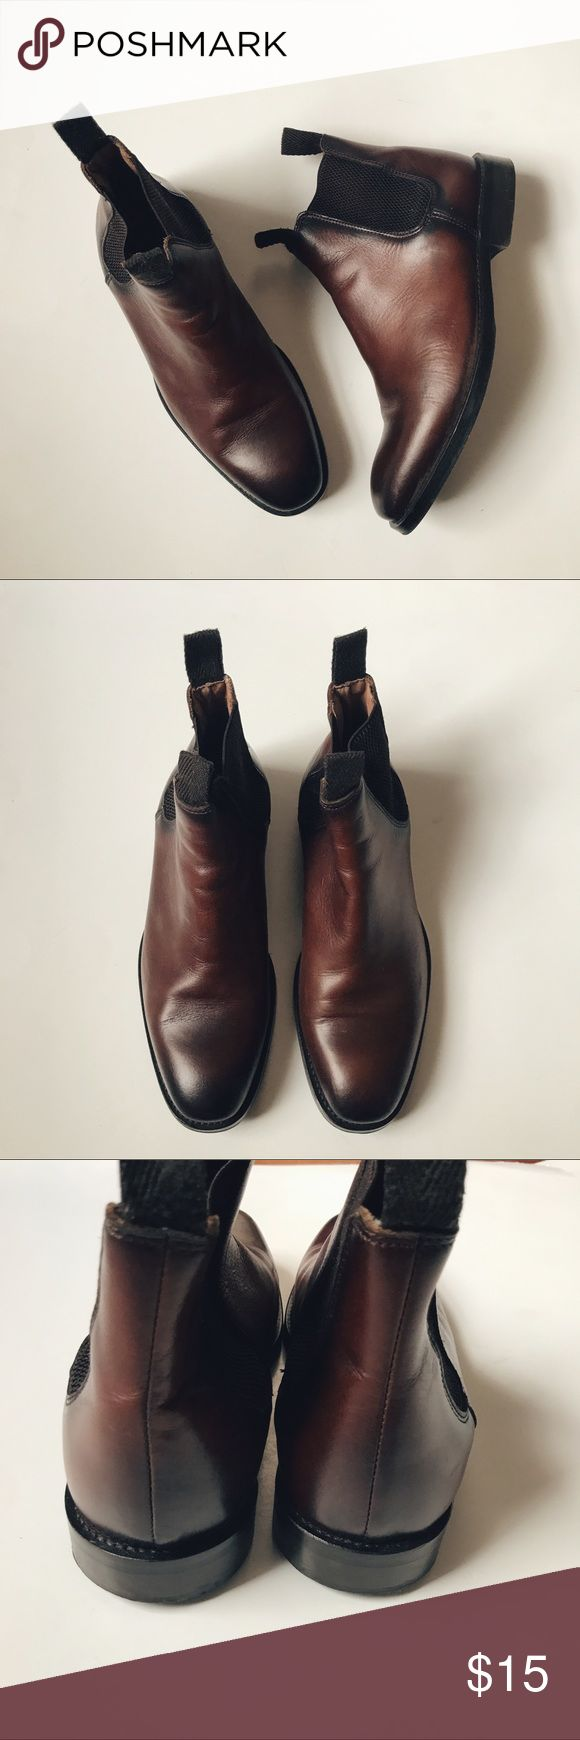 h&m | chelsea boot •genuine leather •used •size 7.5 •made in Portugal •price firm H&M Shoes Boots